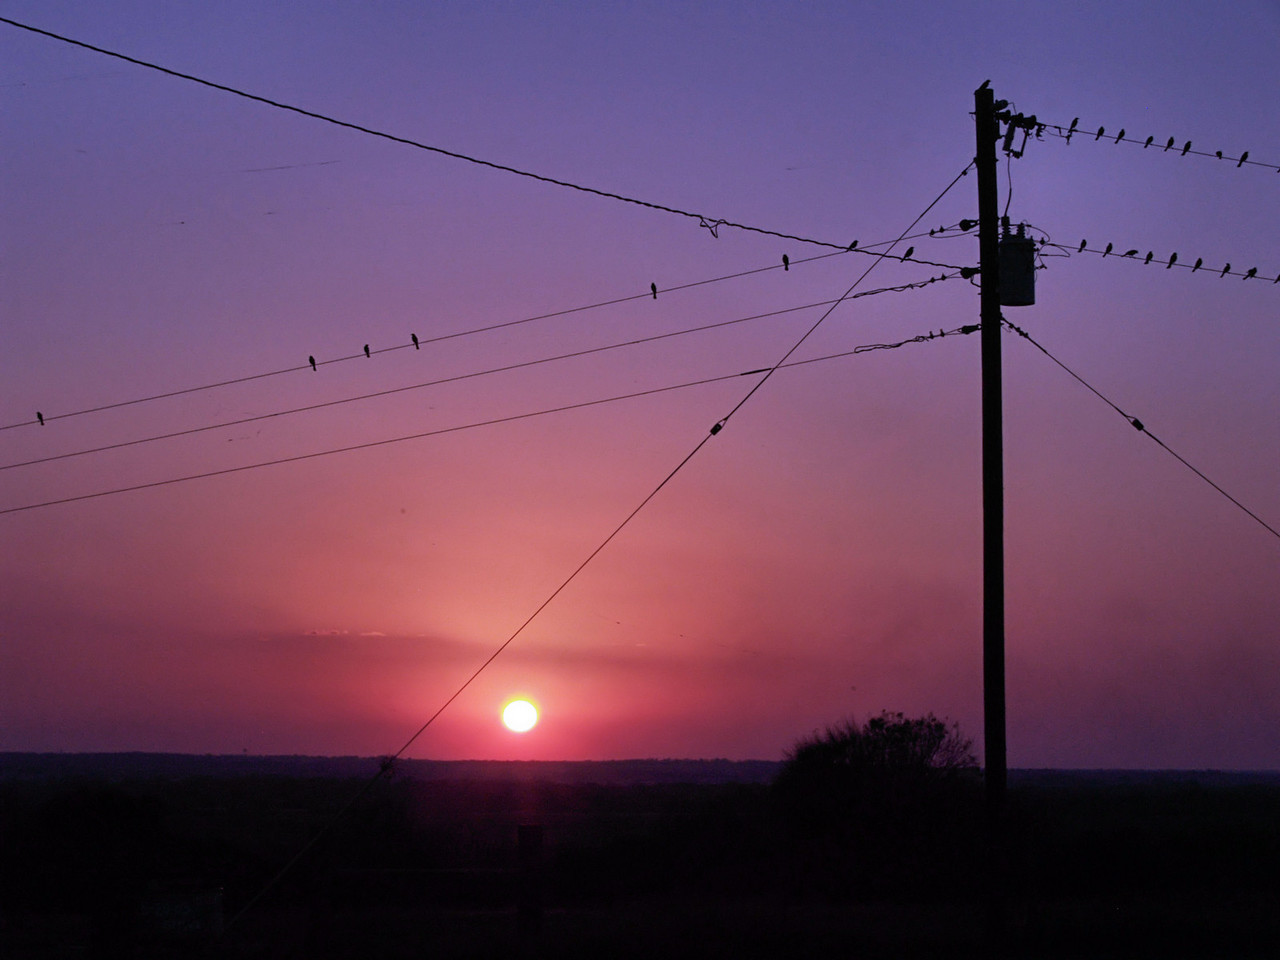 OLYMPUS DIGITAL CAMERA--The birds settled down prior to the sun setting.